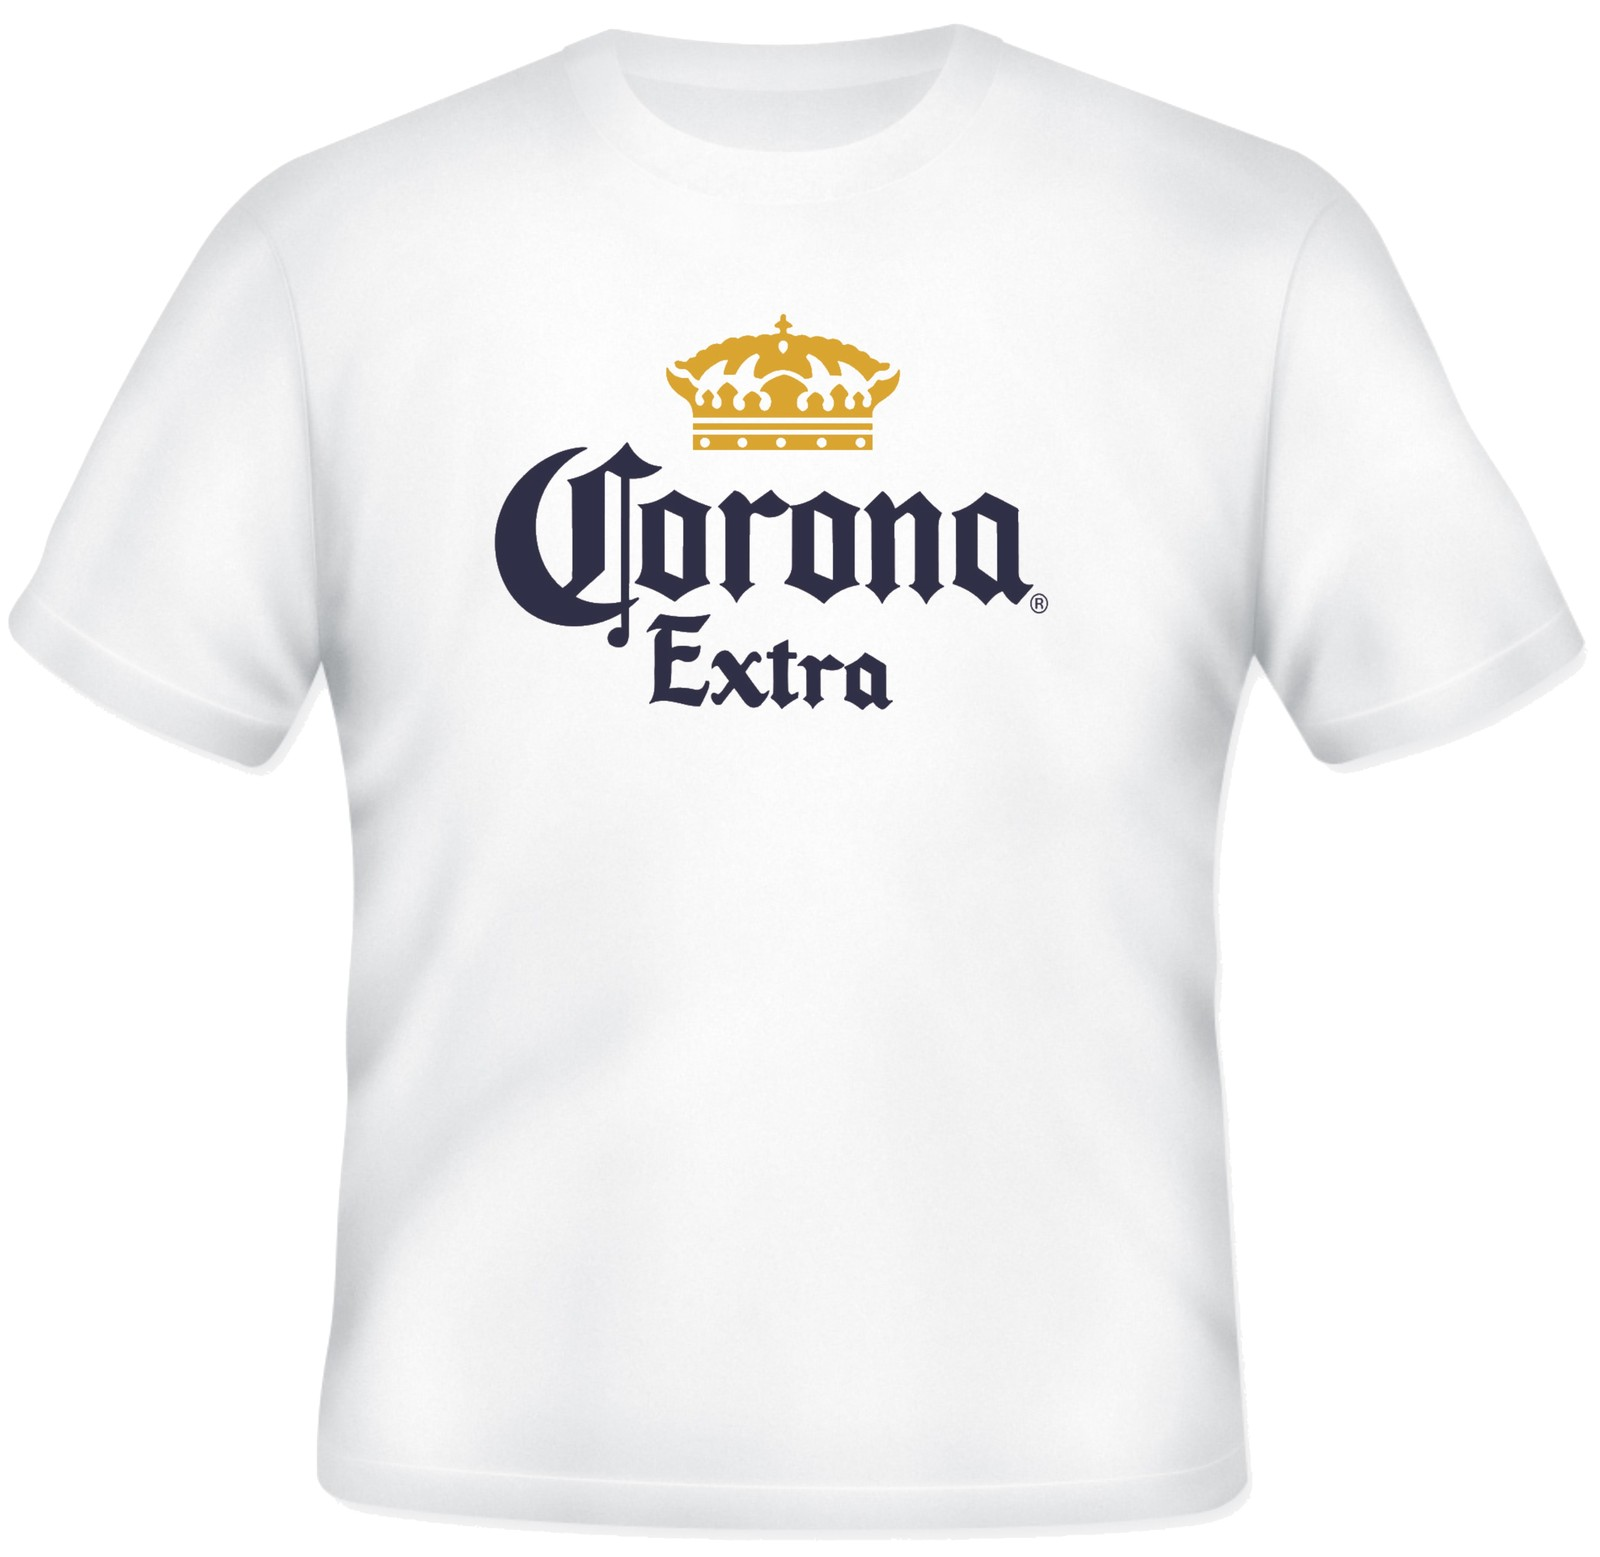 Corona Beer Logo Beer T Shirt Choose Your Size S M L XL 2XL 3XL 4XL 5XL